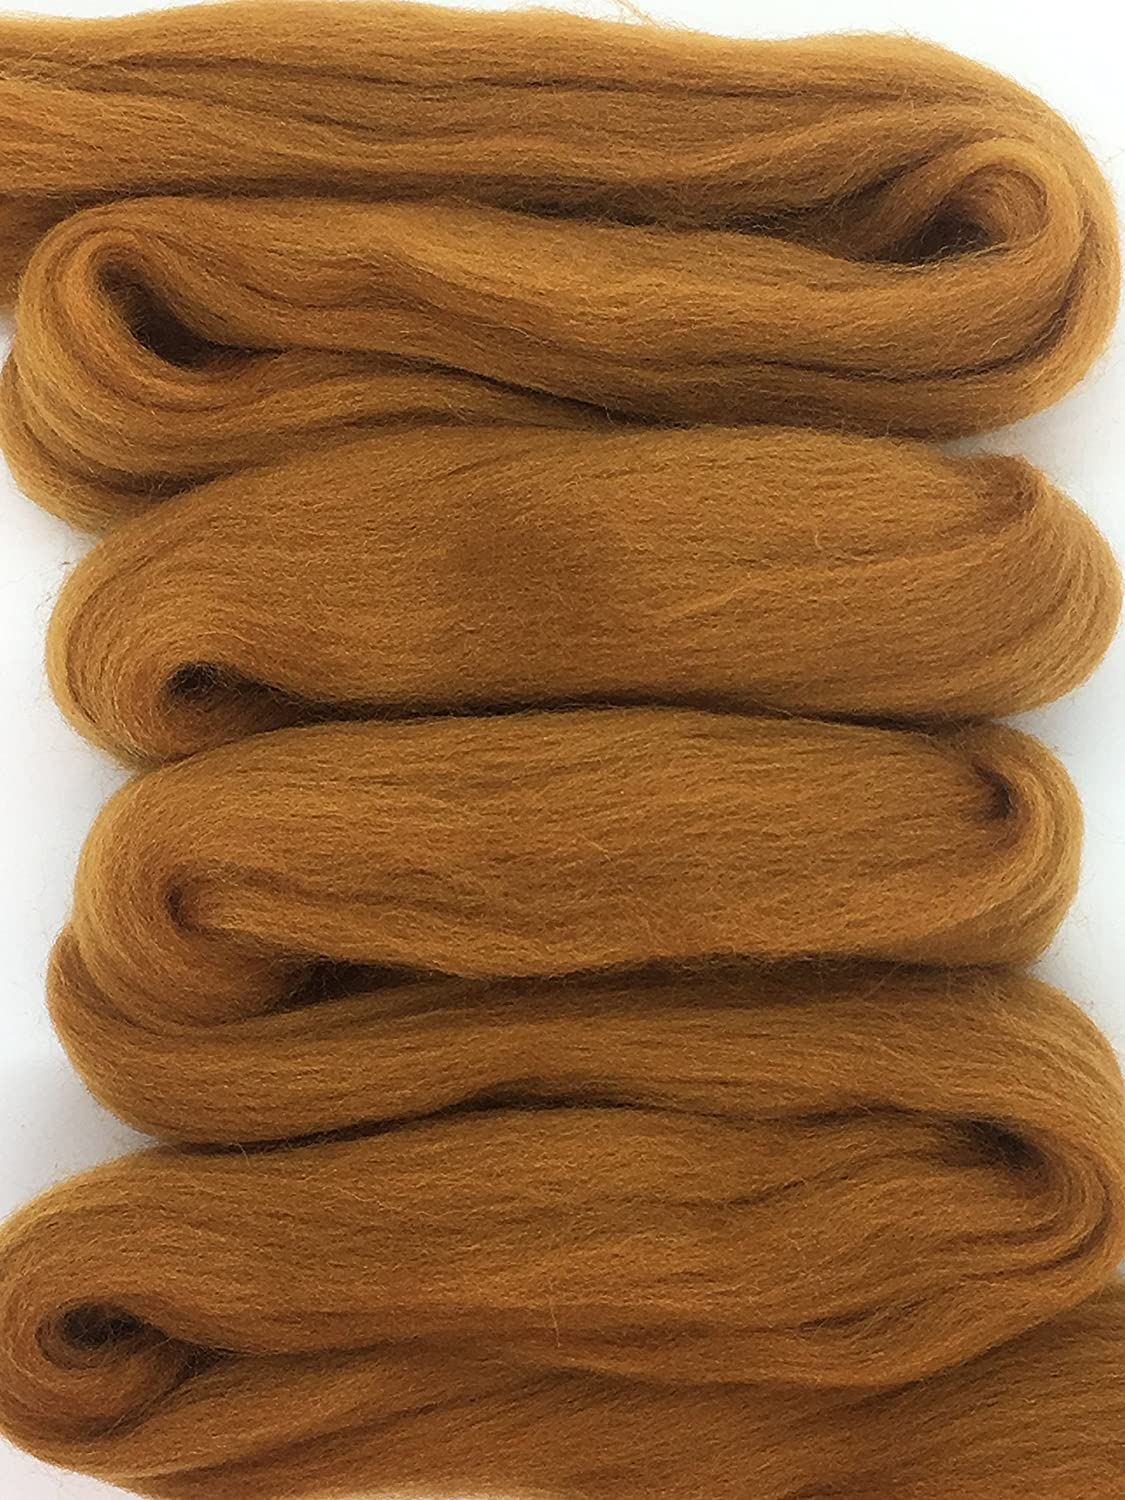 Cinnamon Spice Wool Top Roving Fiber Spinning, Felting Crafts USA (4oz) Shep' s Wool